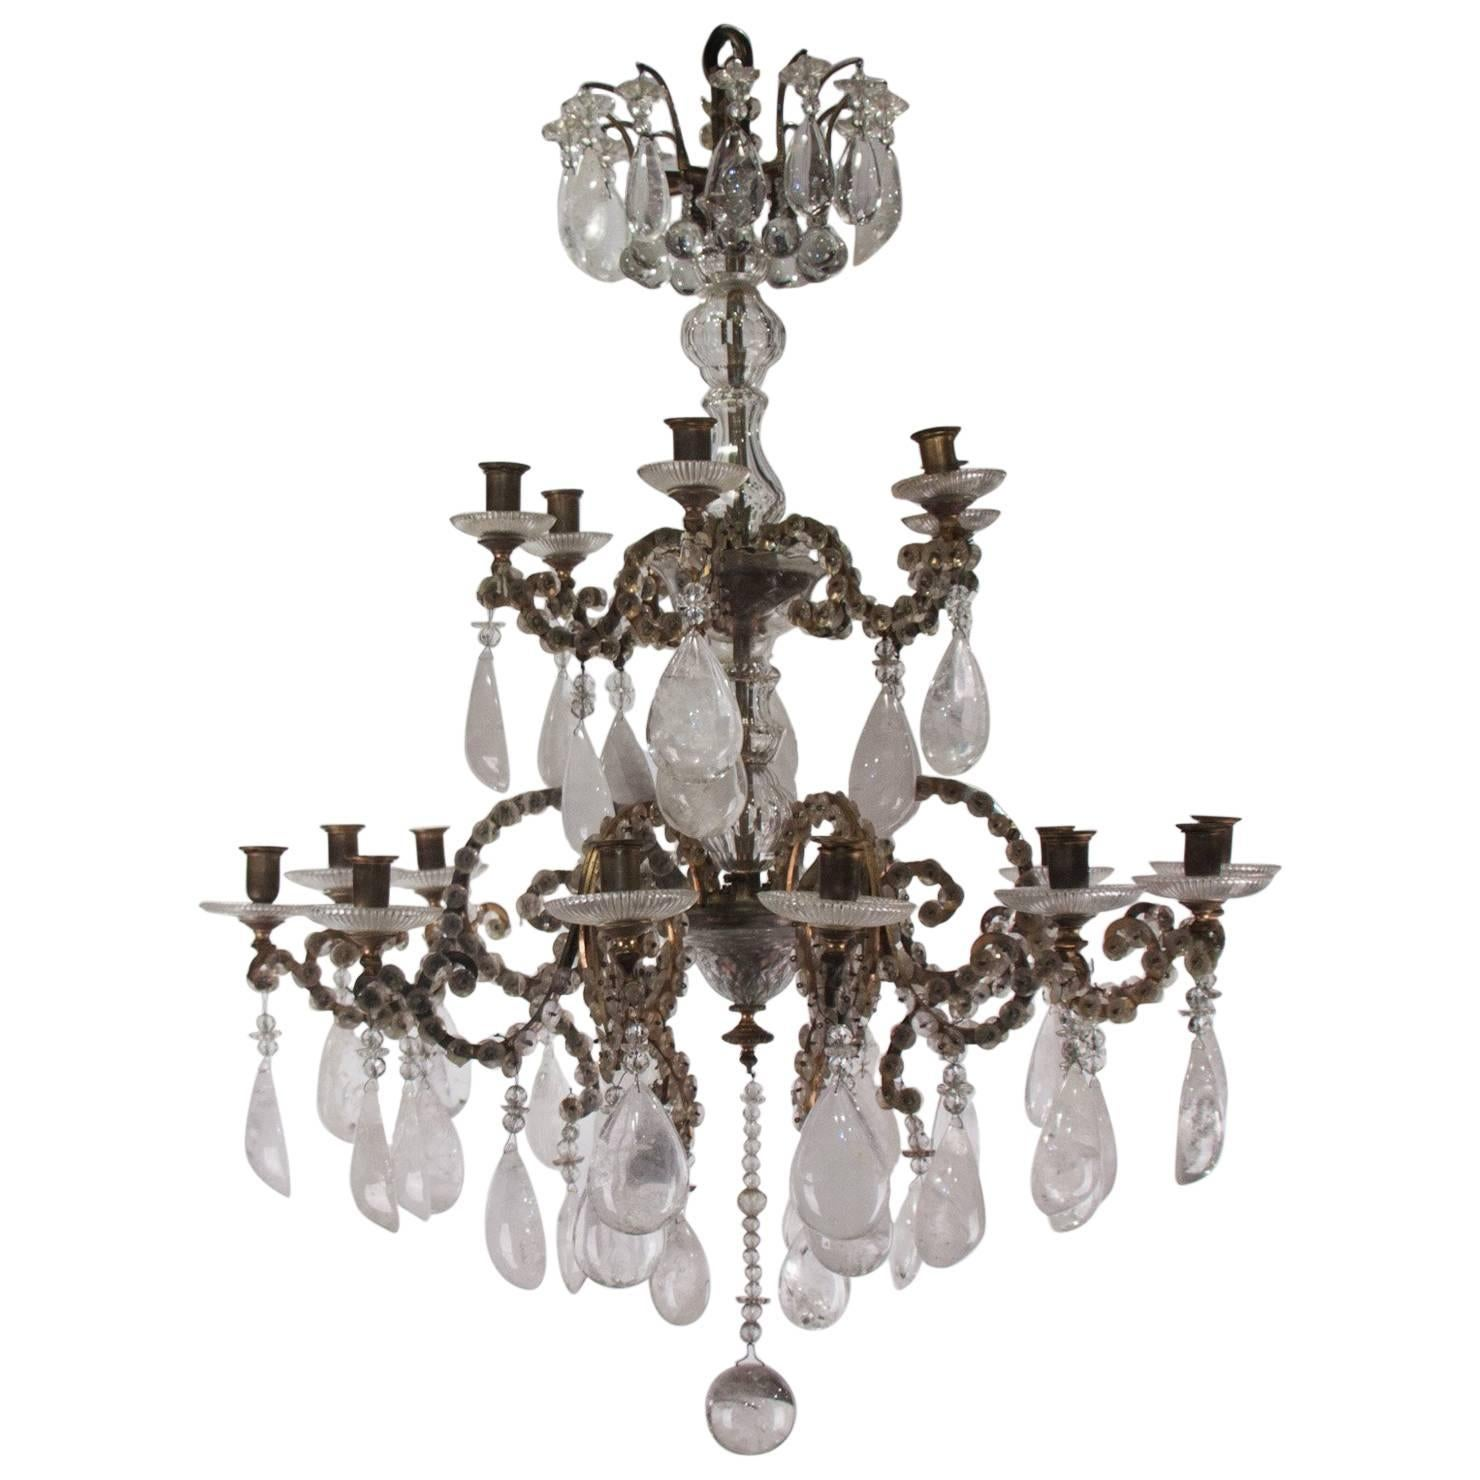 19th Century Chandelier of Rock Crystal and Glass